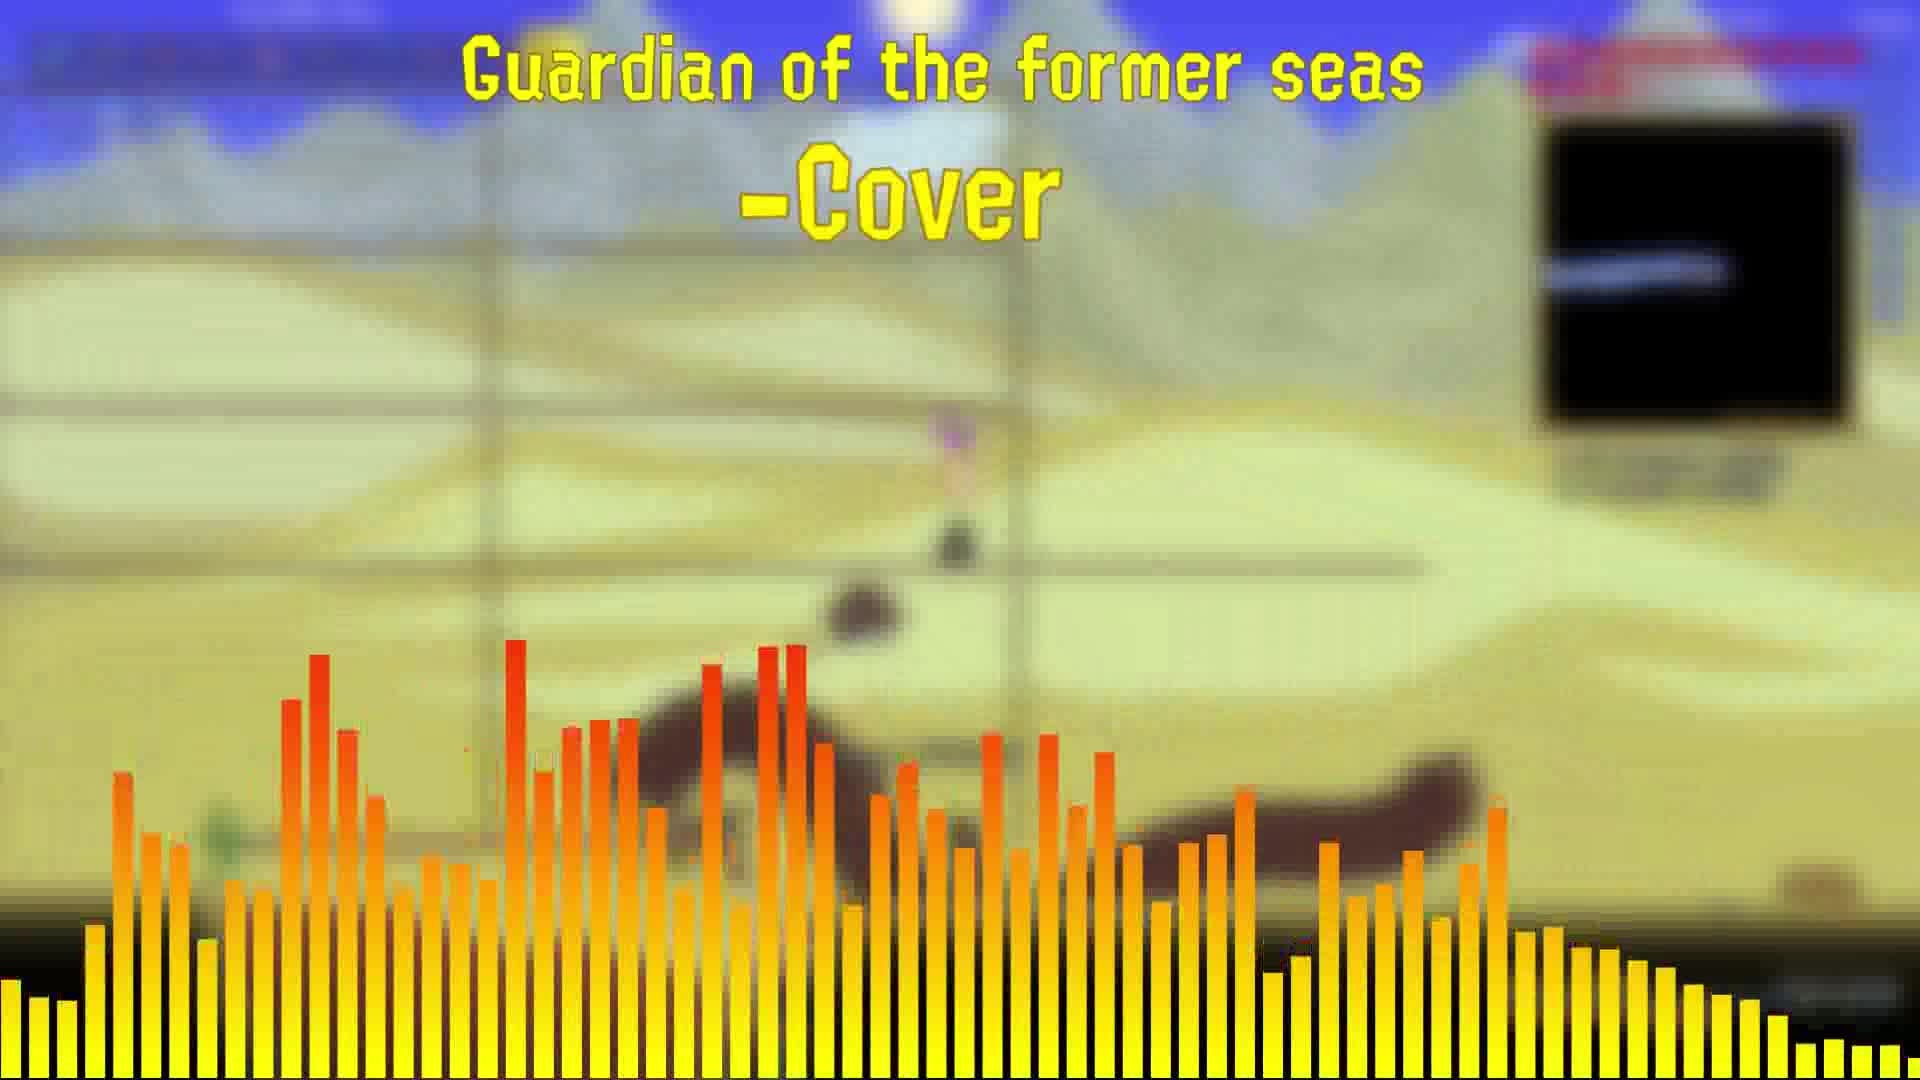 Terraria: General - Guardian of the former seas video cover image 1